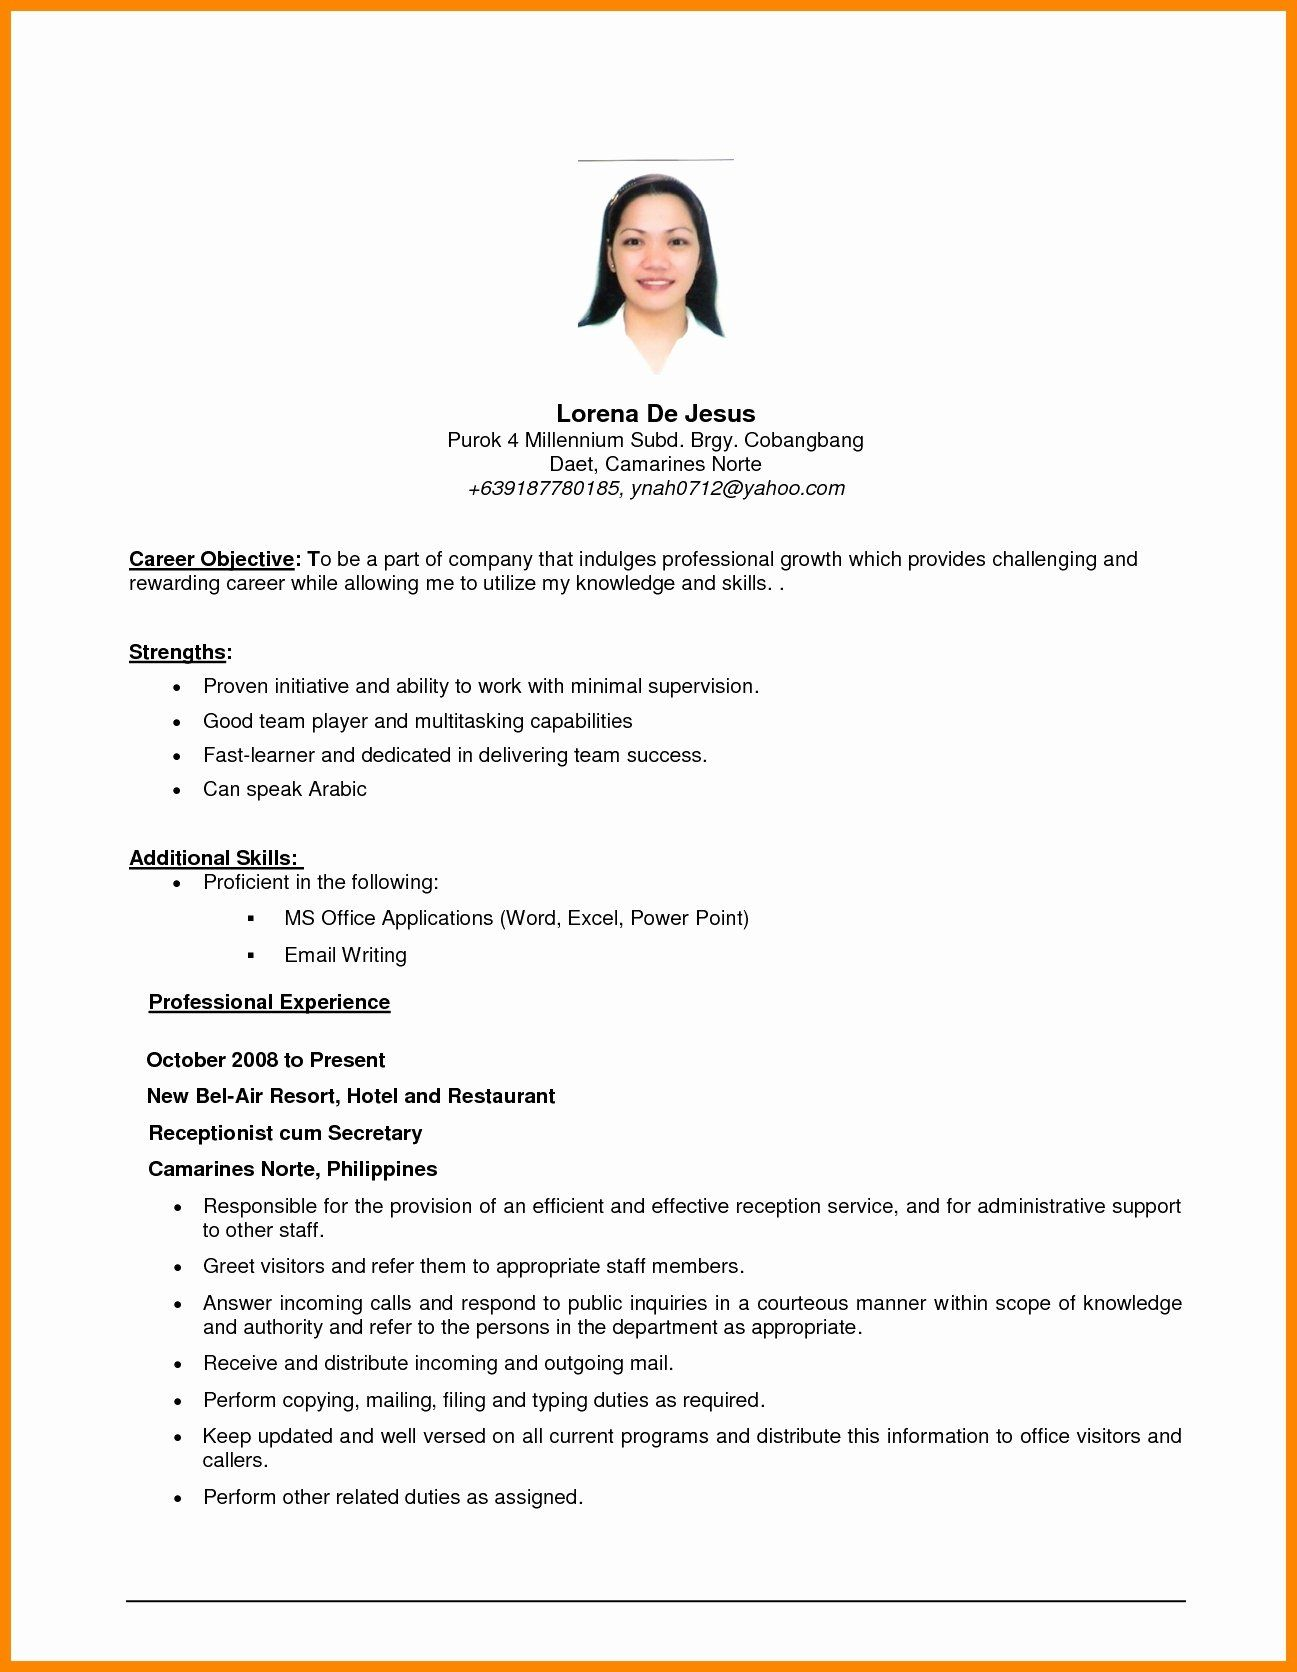 generic objective for resume inspirational general examples career objectives job sample Resume Job Resume Objective Sample